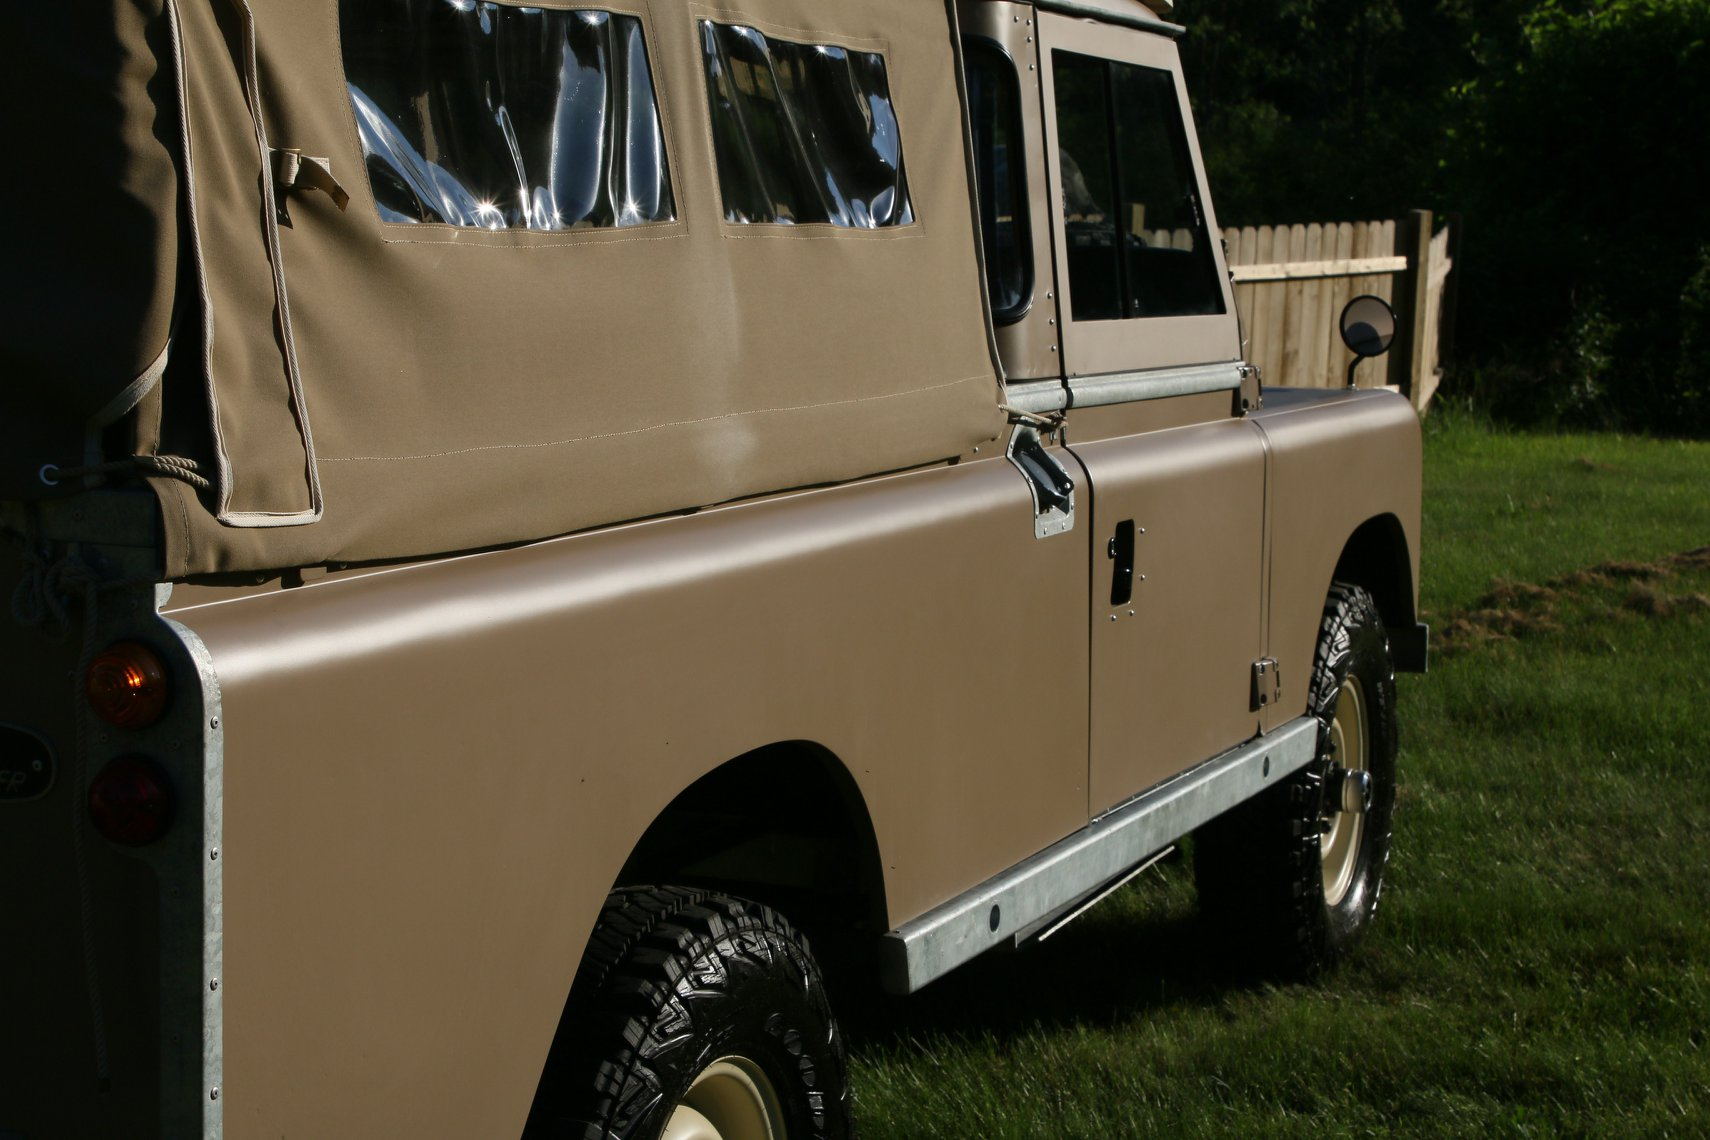 1972 Land Rover Series II 109 Inch Pickup Restoration Photo c